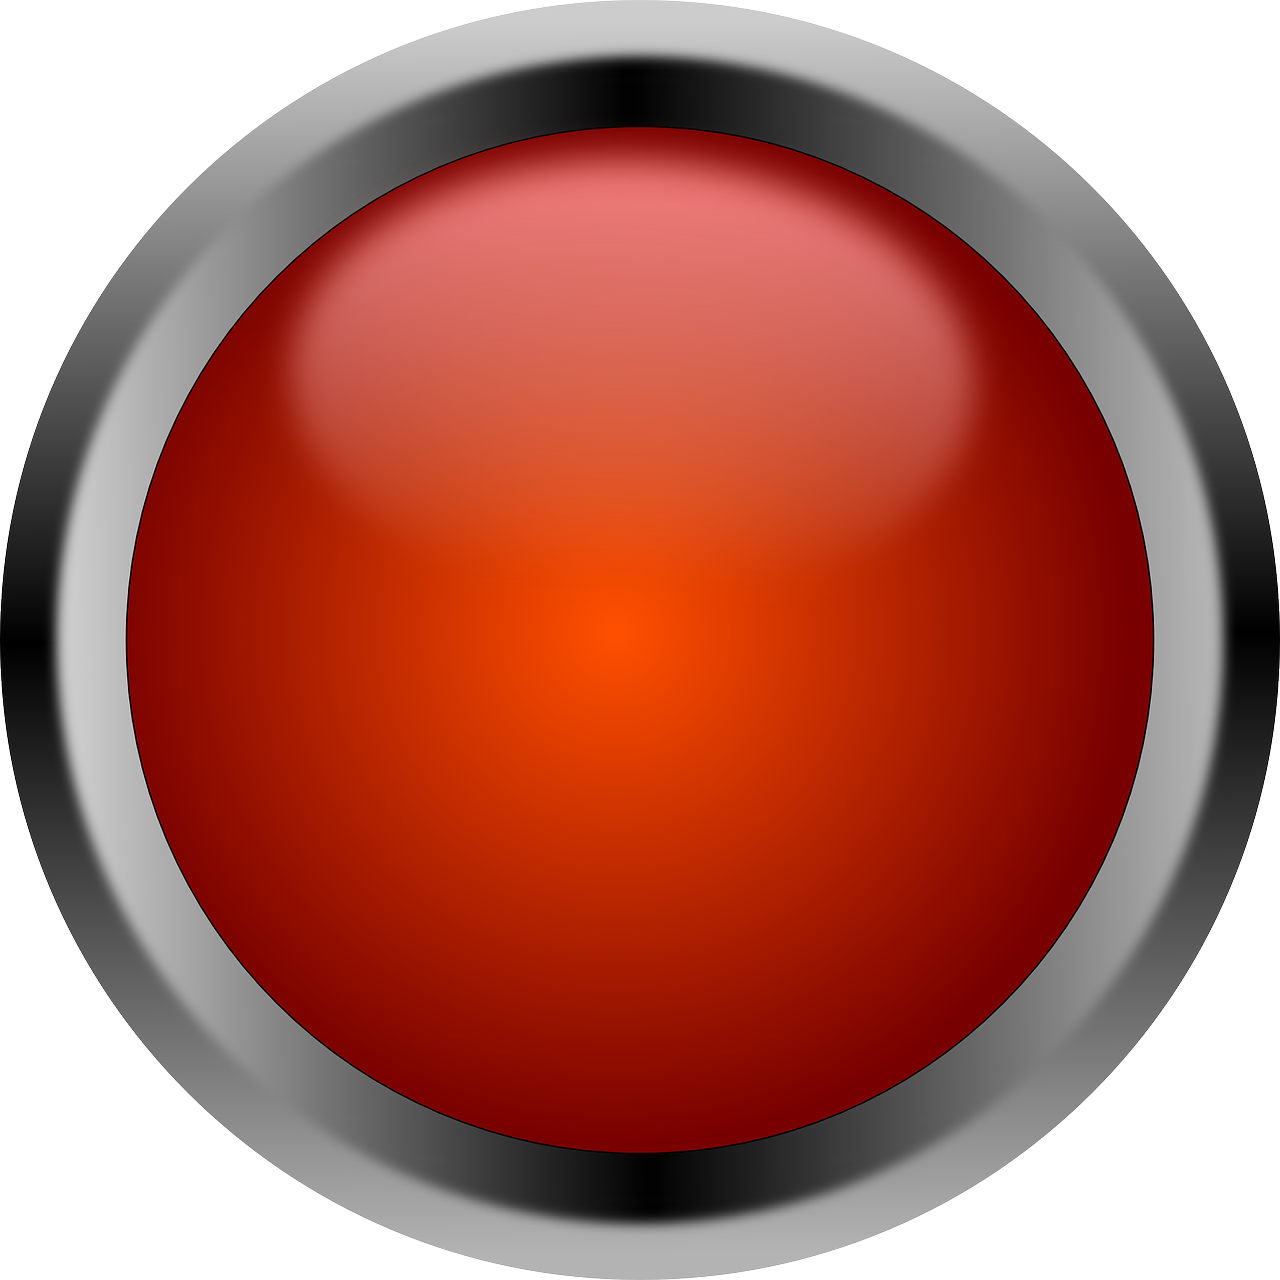 Button Red Round Shiny PNG.